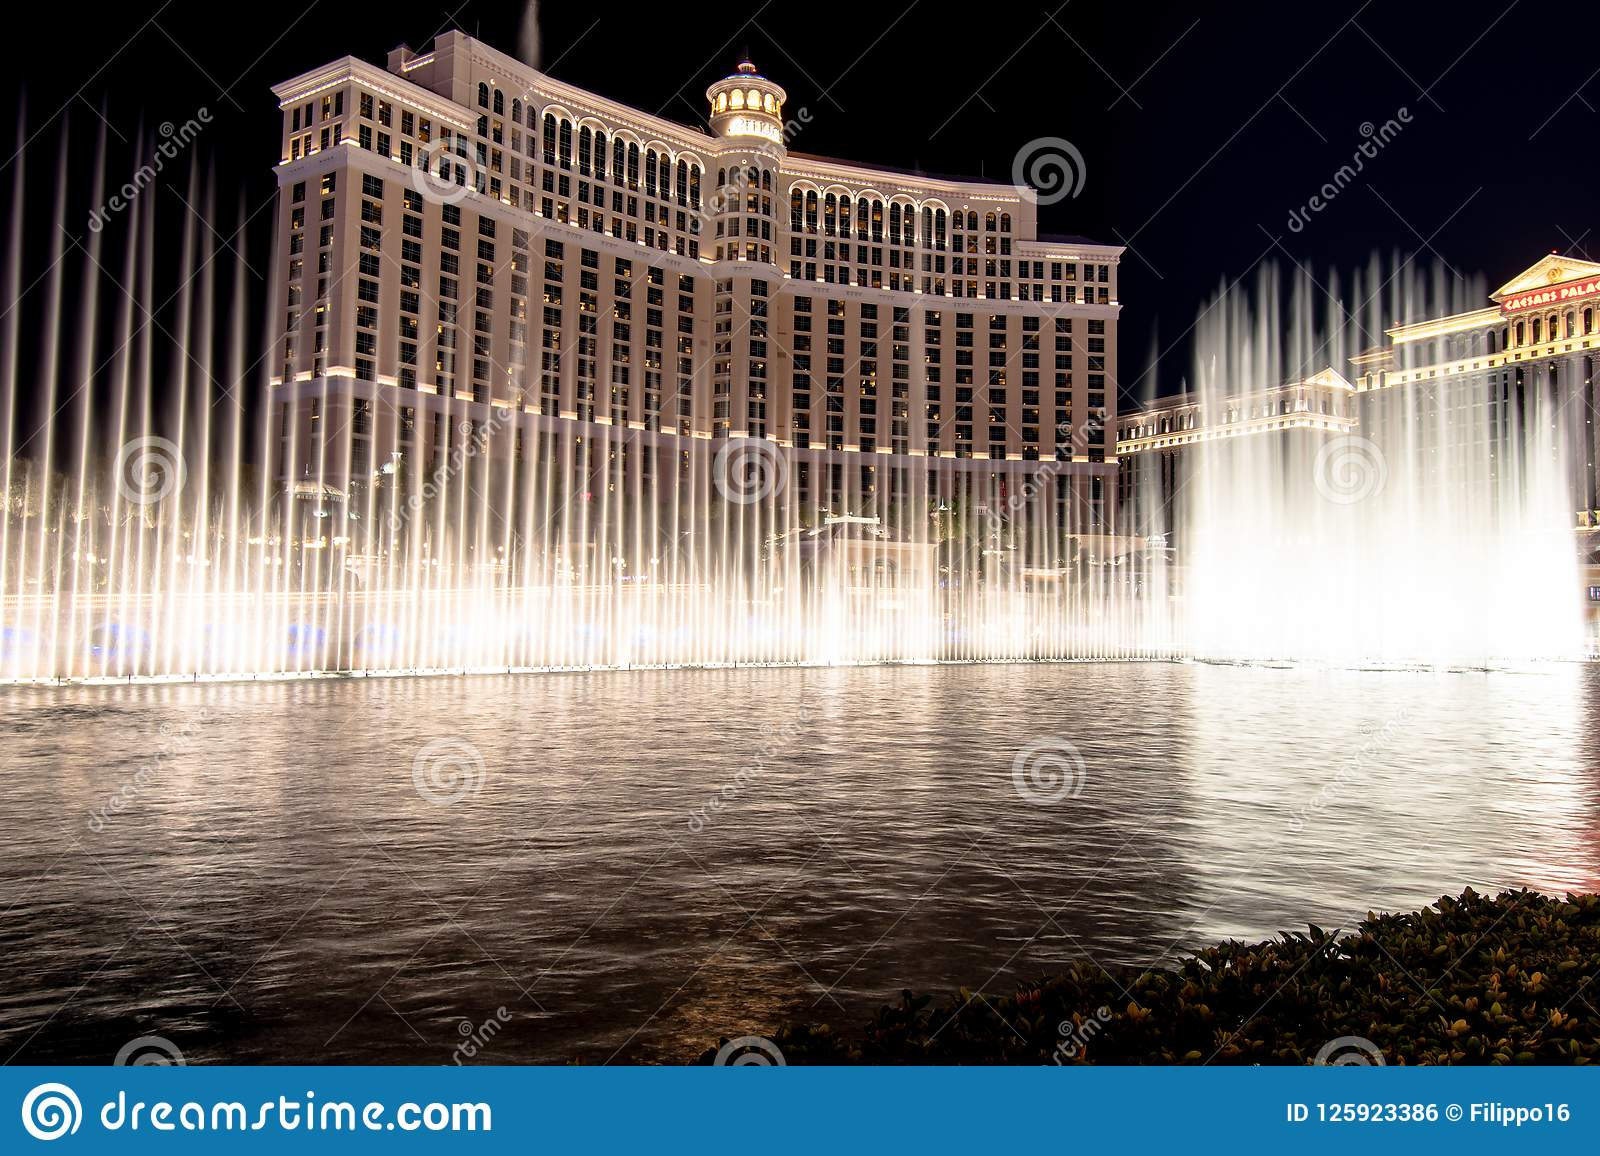 Las Vegas, NV, USA 09032018: stunning view of Bellagio Fountain Show at night